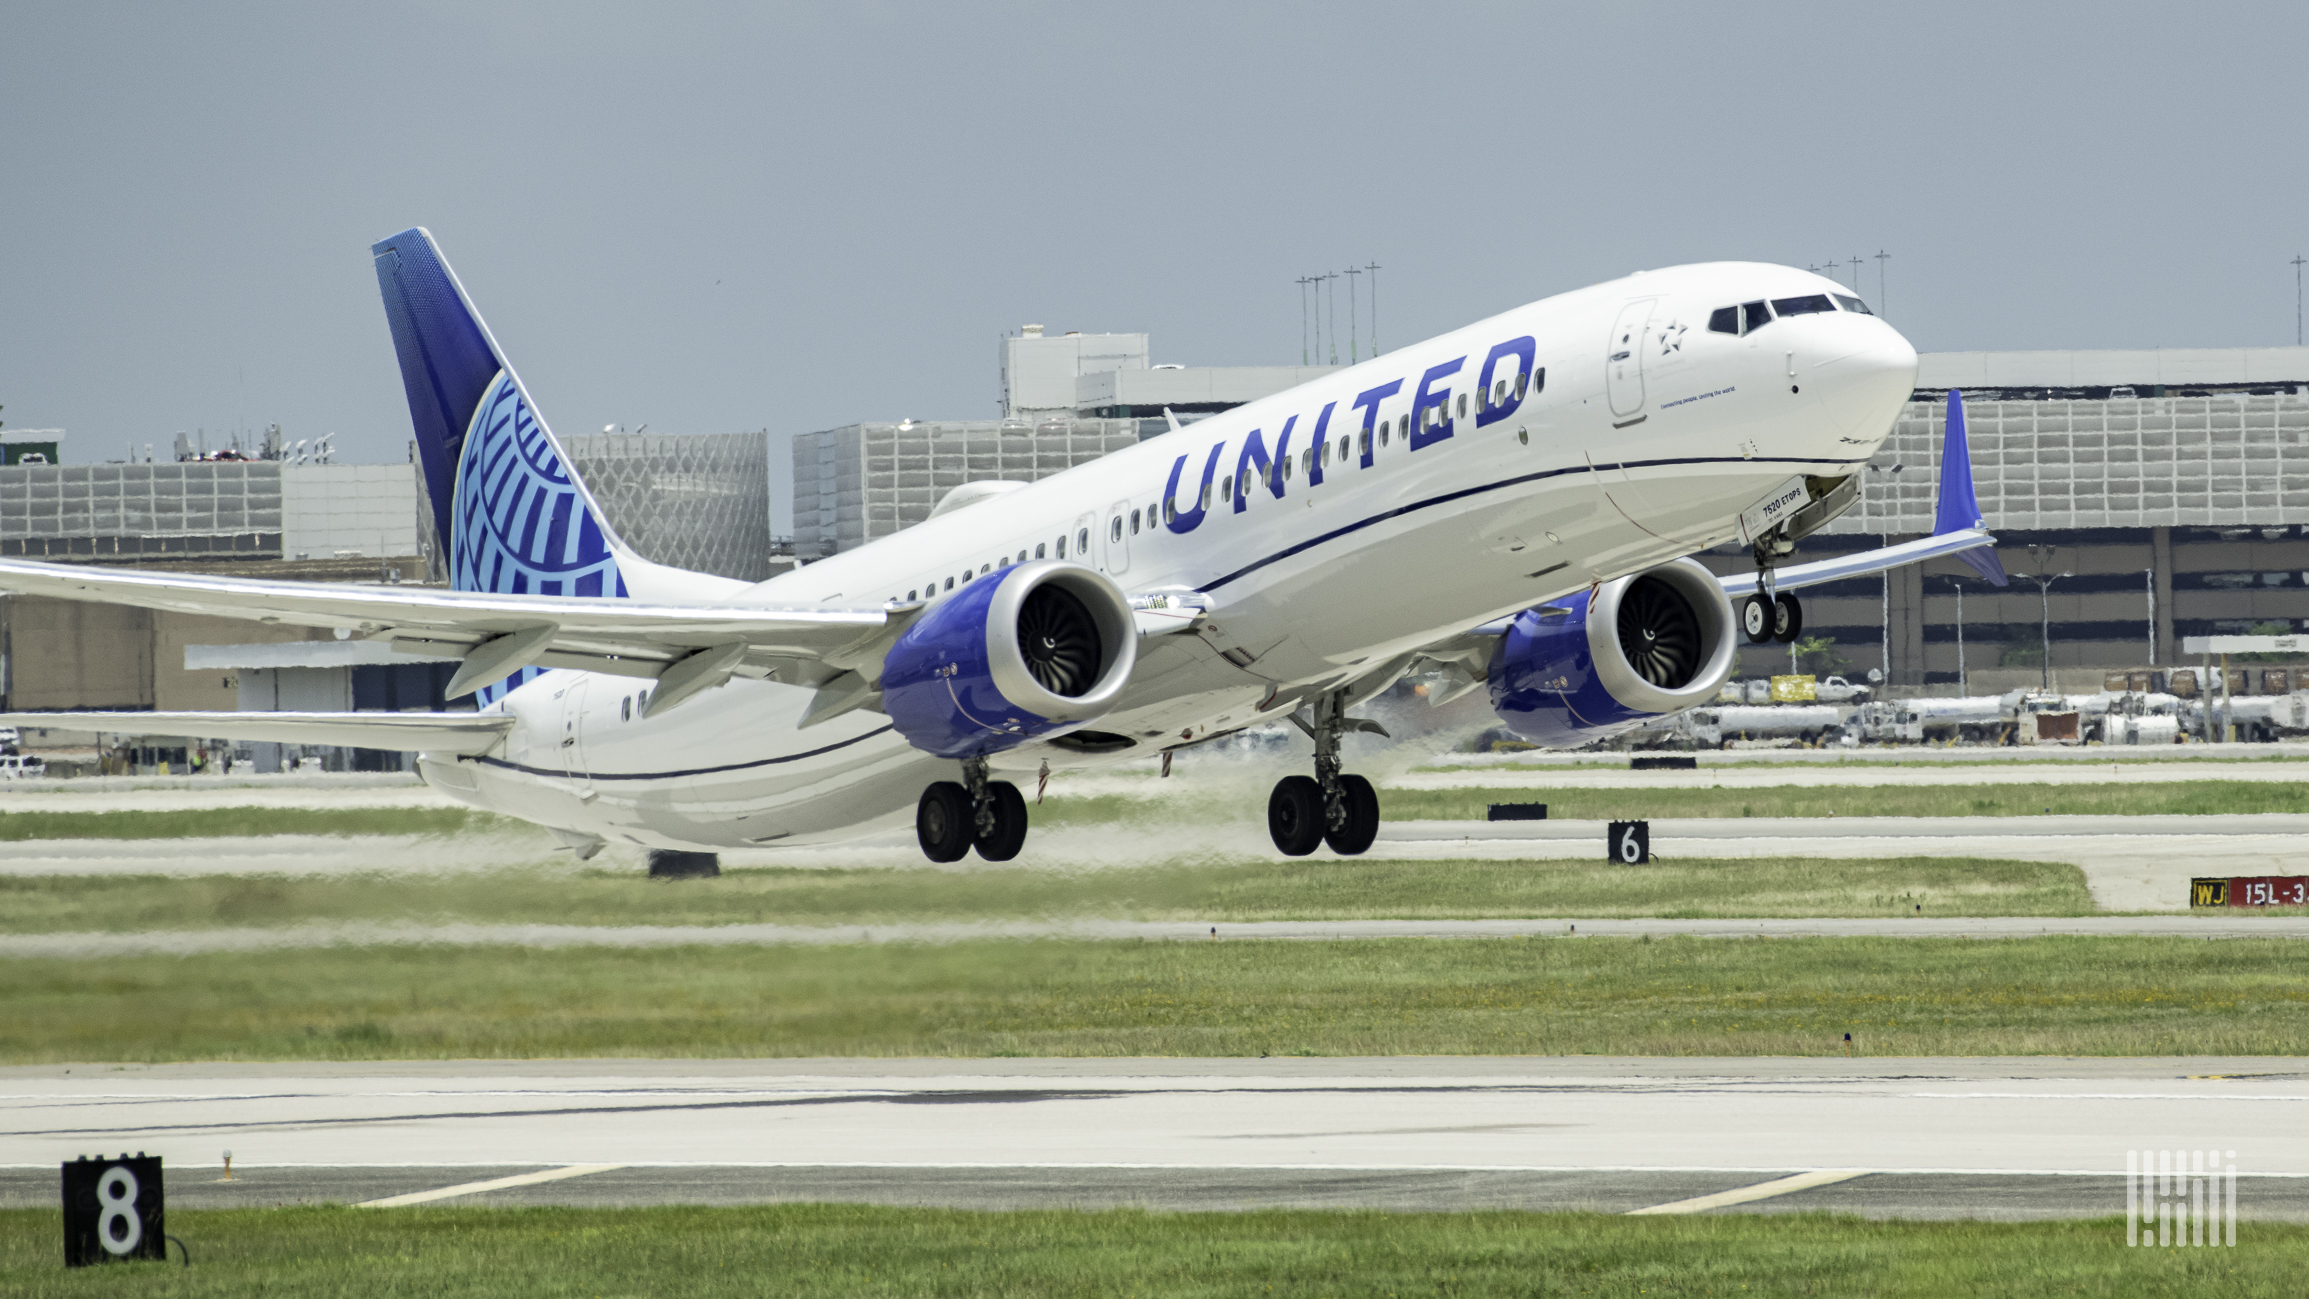 A white United Airlines jet with blue tail touches down on the runway.